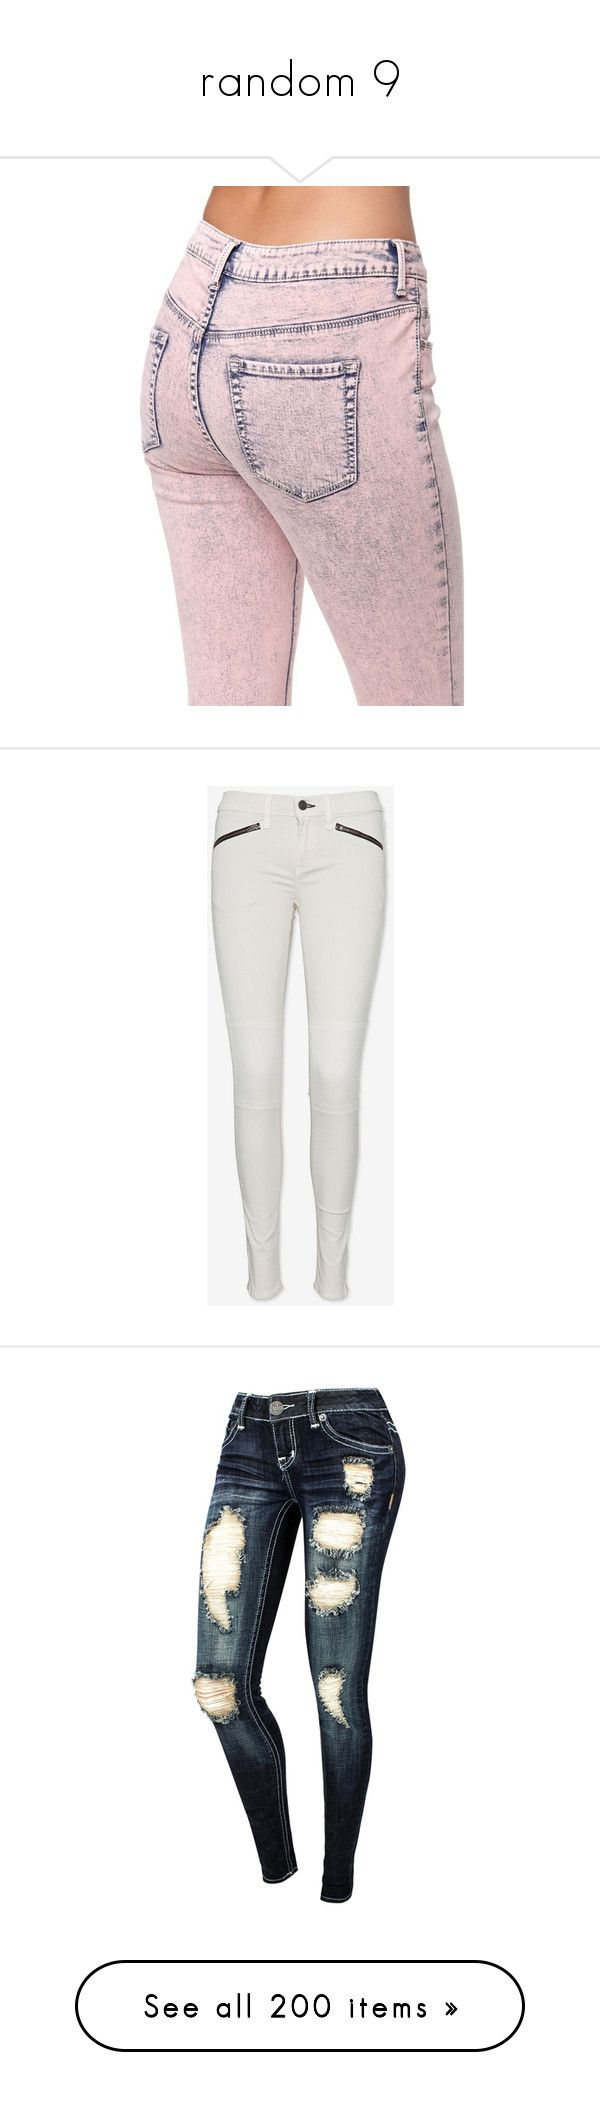 """""""random 9"""" by resi748 ❤ liked on Polyvore featuring jeans, pants, coral, high rise jeans, high-waisted skinny jeans, stretch jeans, pink skinny jeans, high waisted acid wash jeans, bottoms and pantalones"""